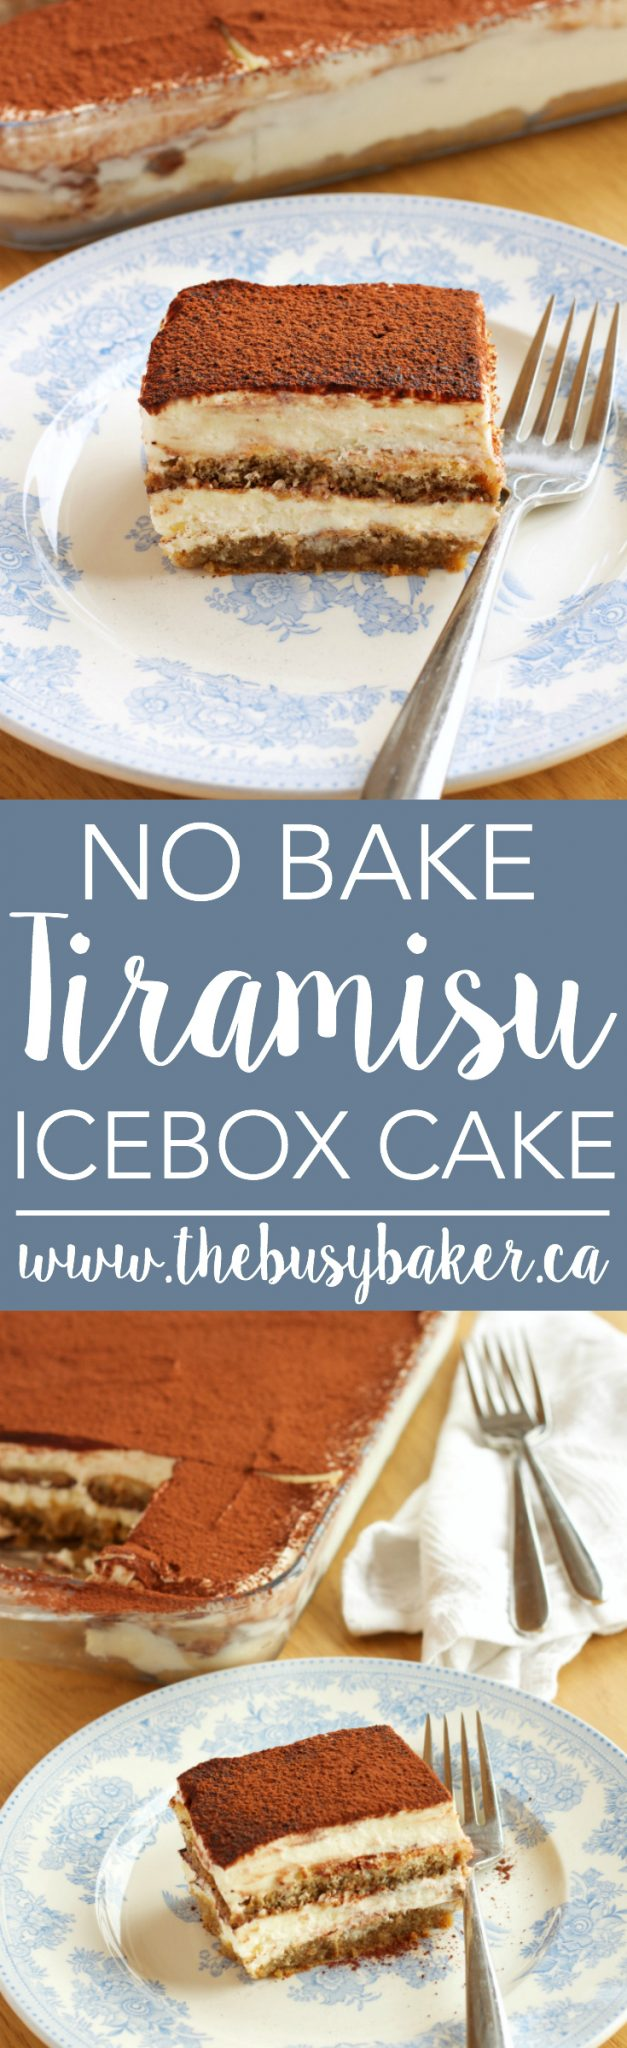 how to make tiramisu cake without oven